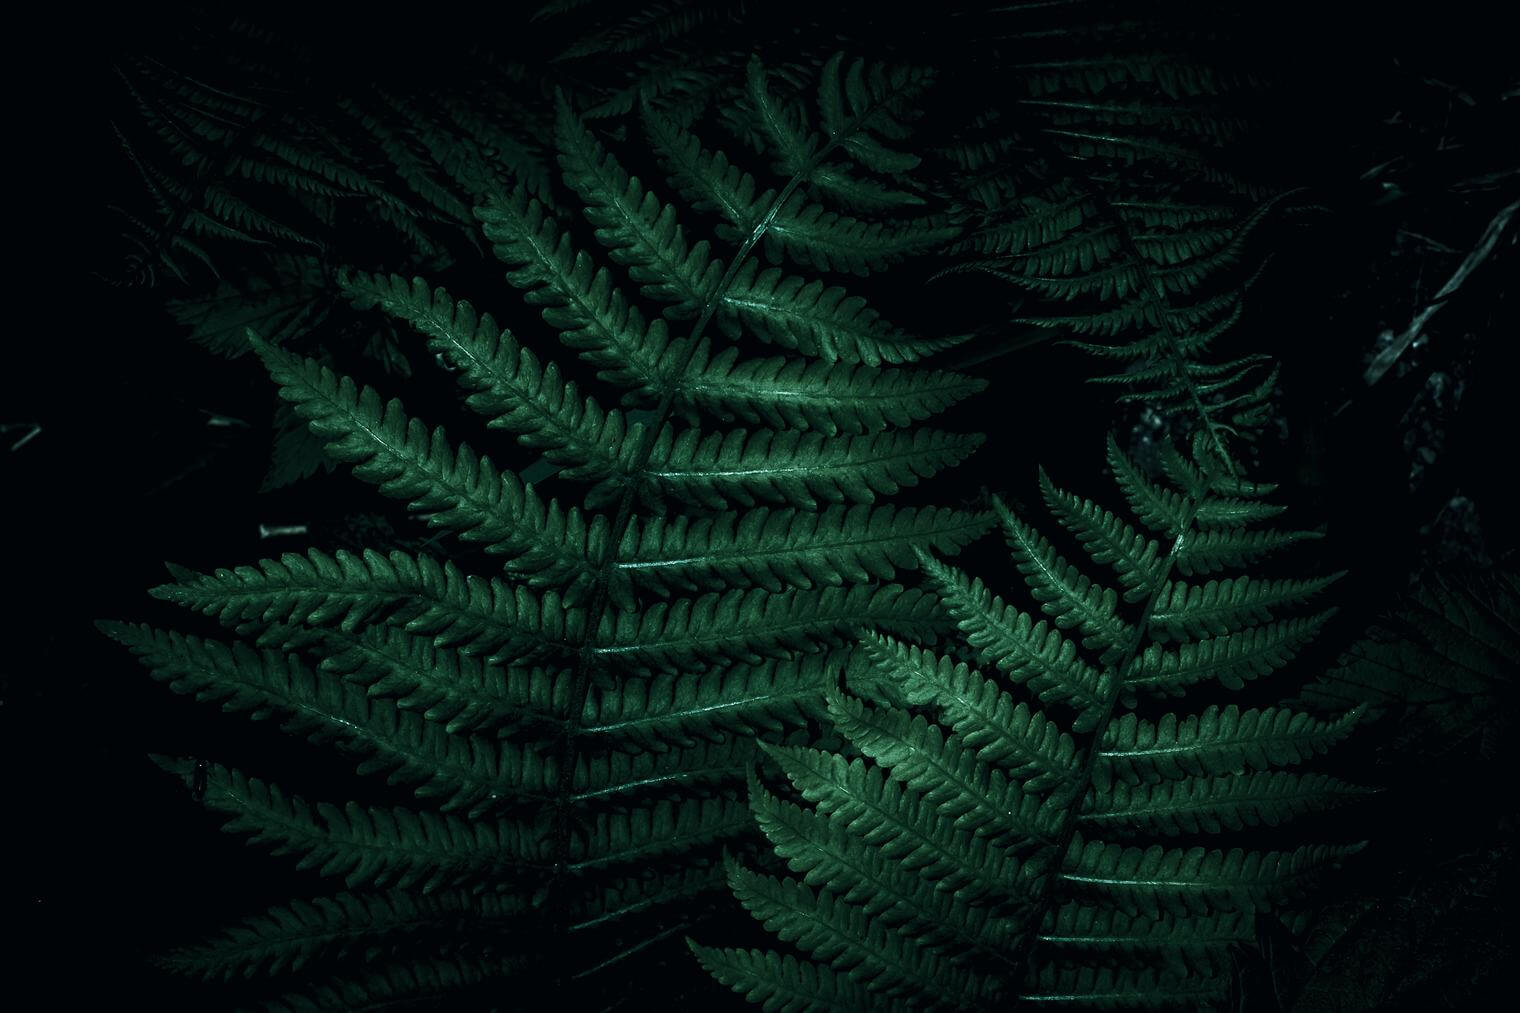 Dark and Moody Image of Fern